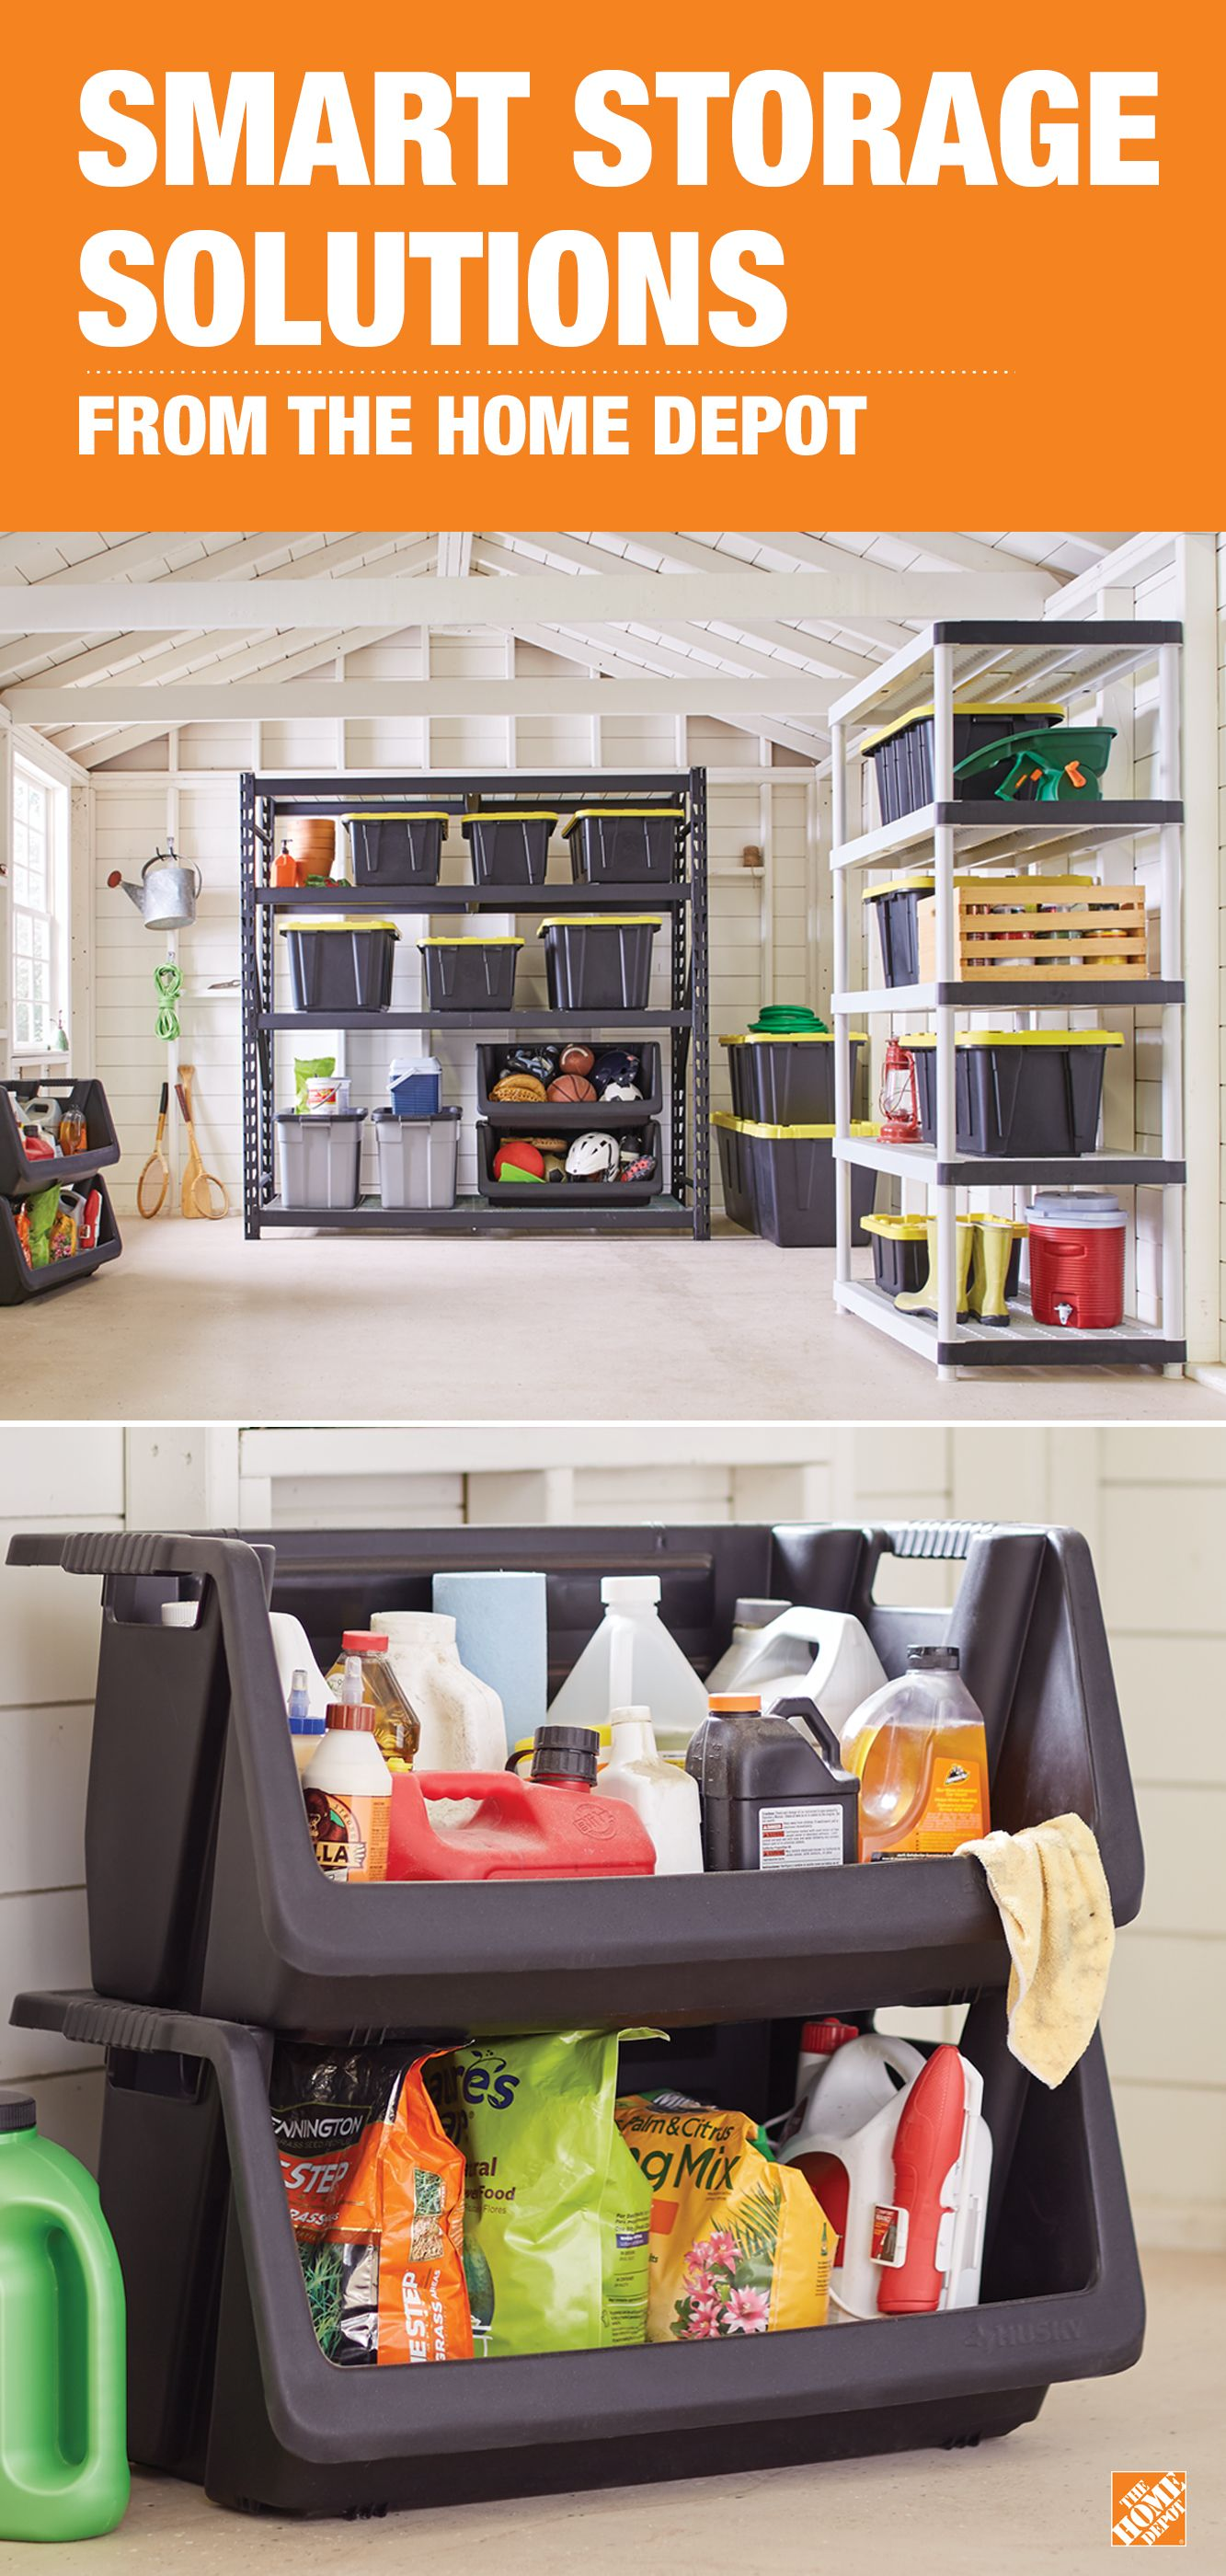 Storage Solutions Maximize Space And Control Clutter With Storage Solutions From The